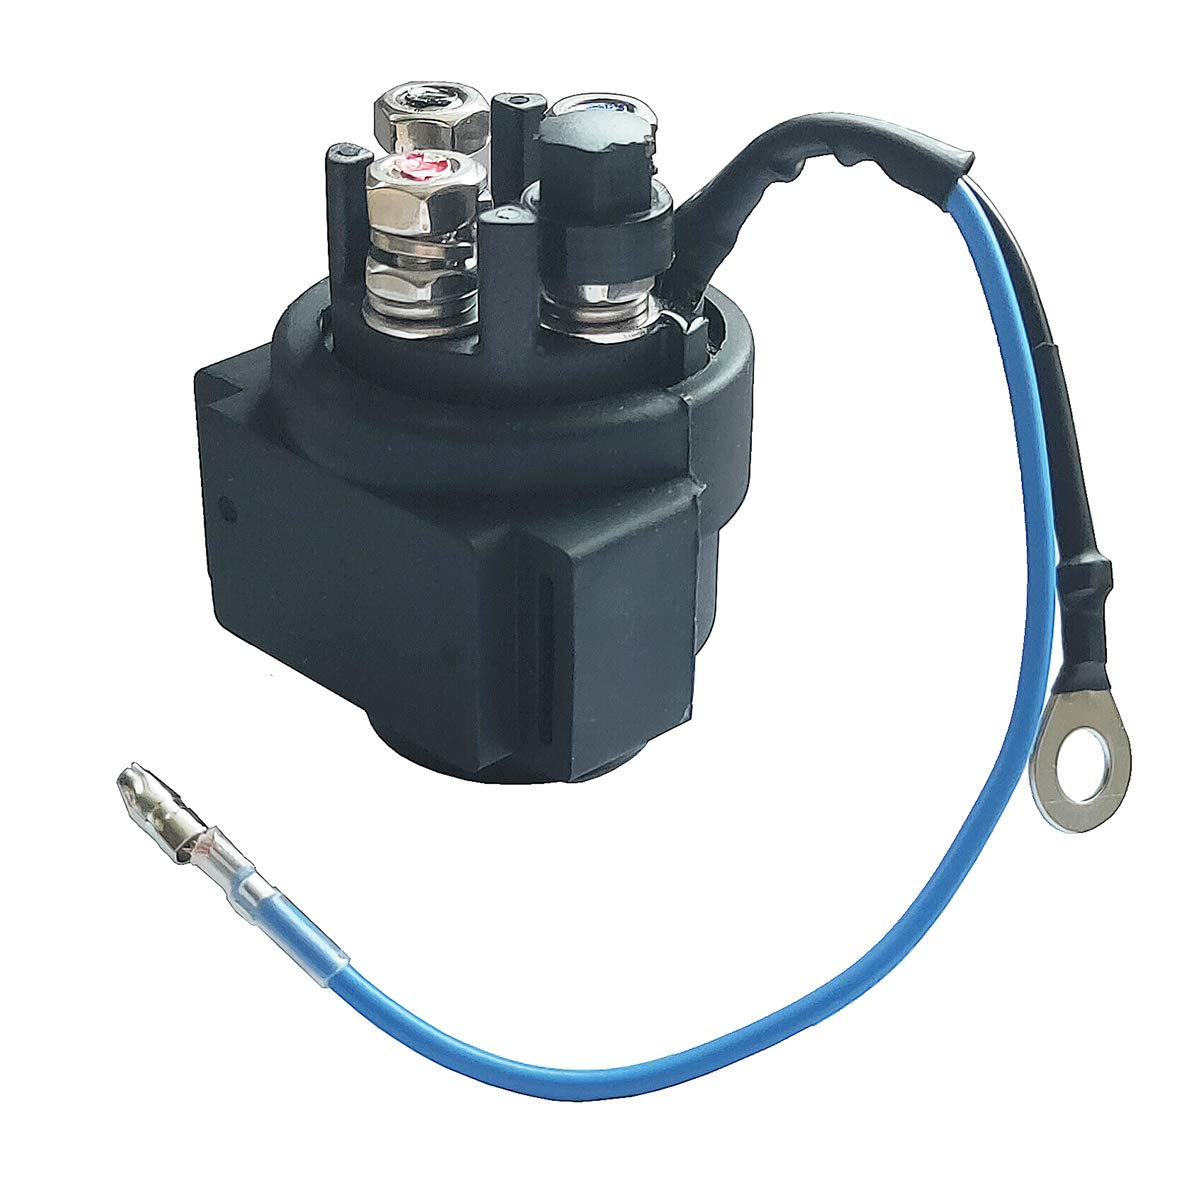 Power Trim Tilt Relay,for Suzuki Outboards,Fit for DF40-DF140 4-Strokes & DT55-225HP 2-Strokes, Replace 38410-94550, 38410-94551, 38410-94552